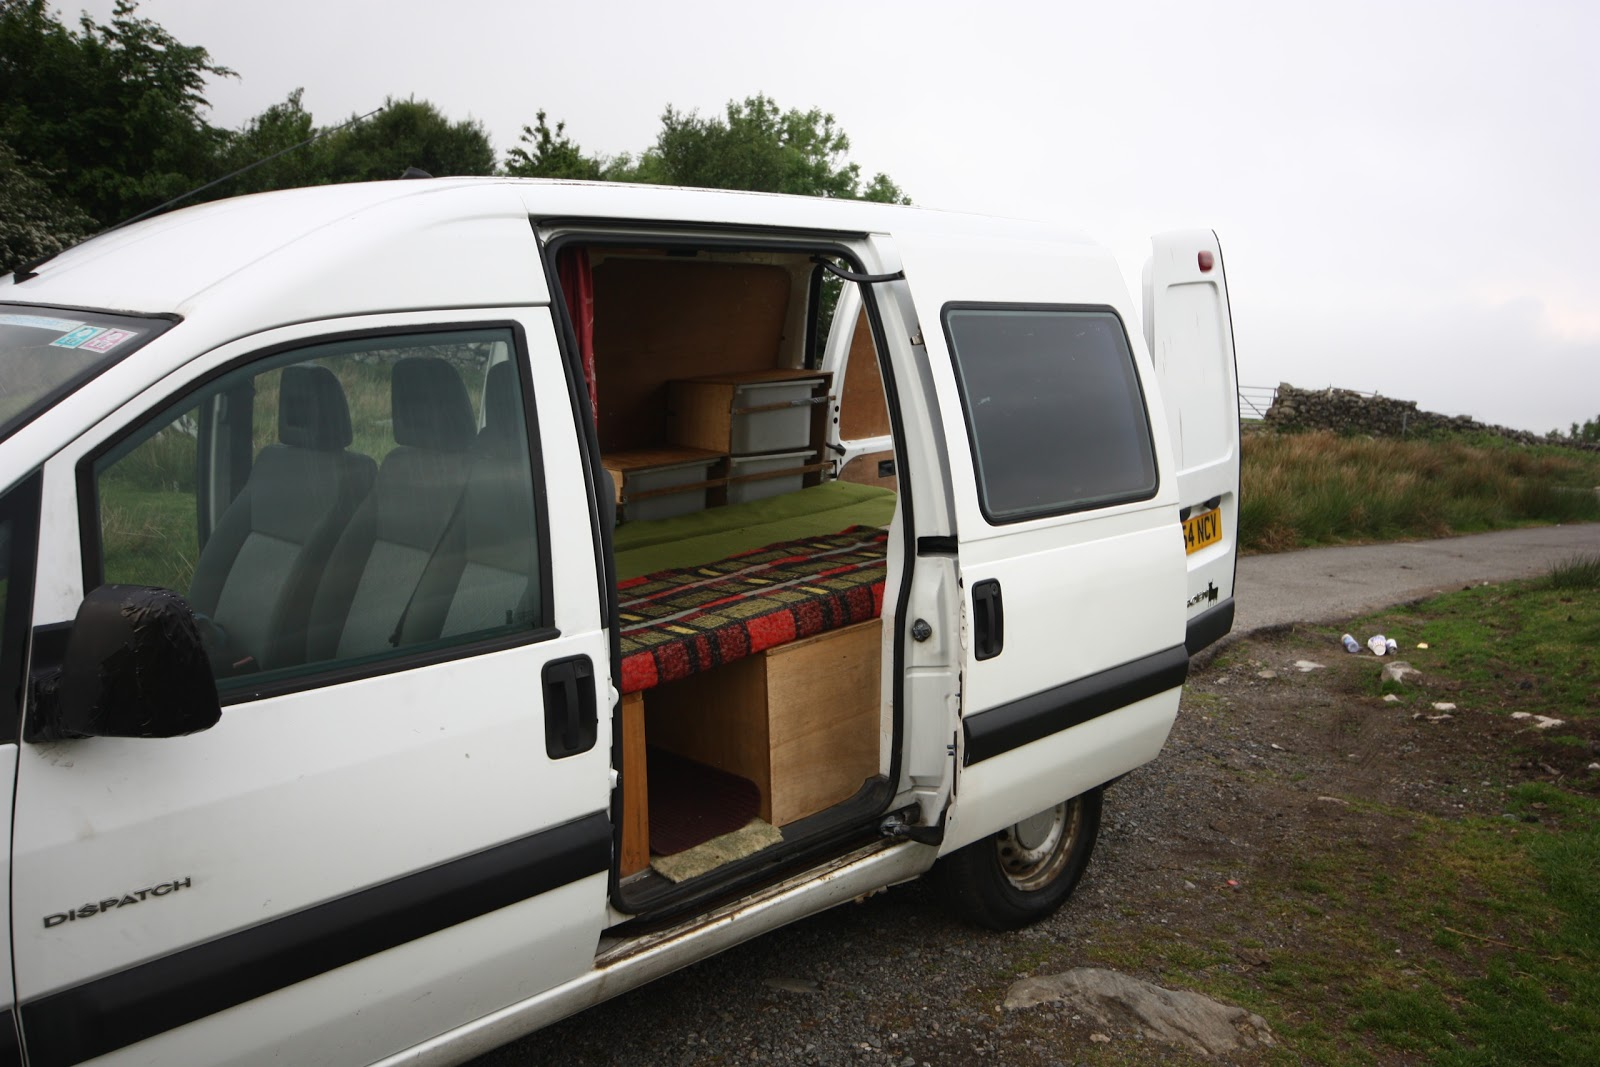 Sold Citroen Dispatch Campervan Zero Carbon Adventures Central Locking Wiring Diagram Mechanical Door Locks Are A Bit Temperamental Common Issue With Not An If Using Ignition Works Perfectly